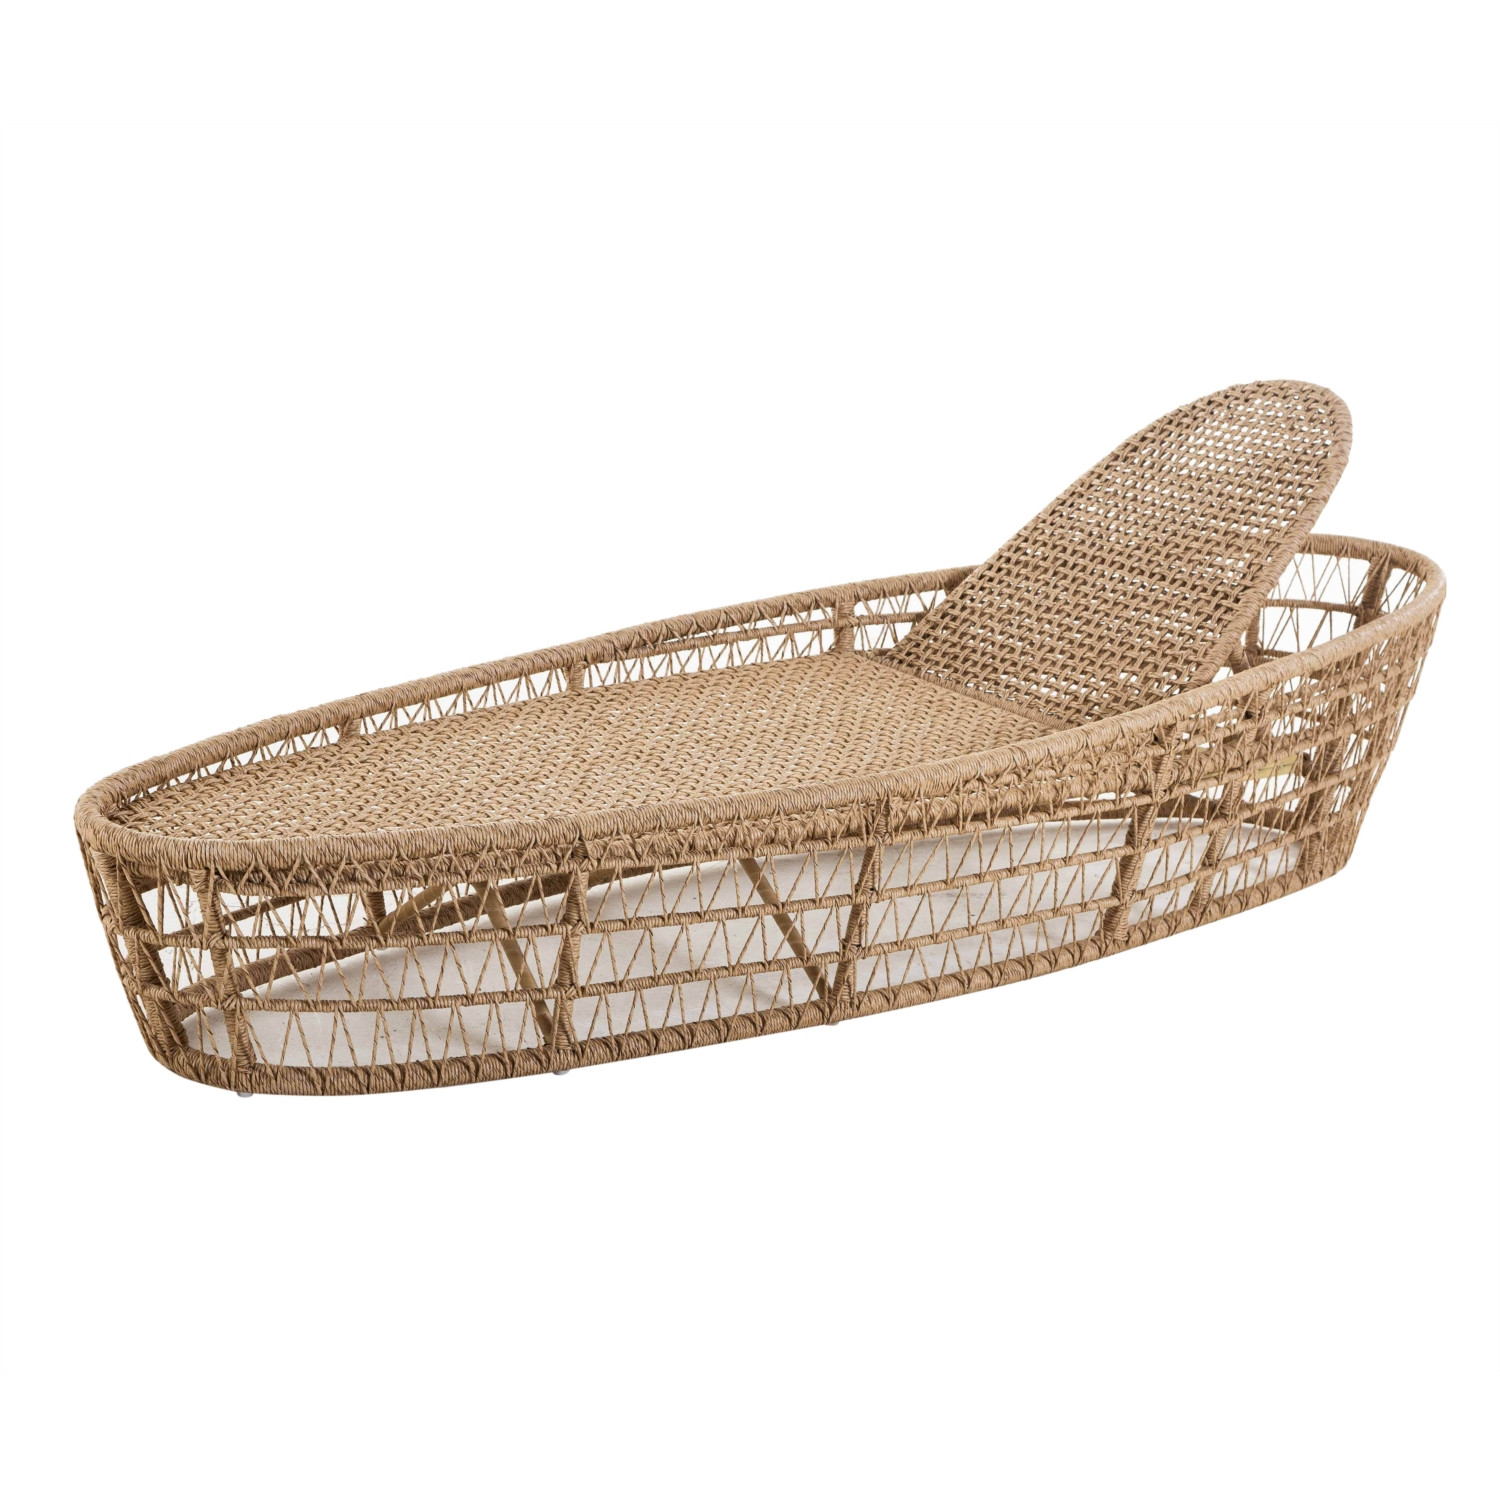 PARISSIAN DAYBED